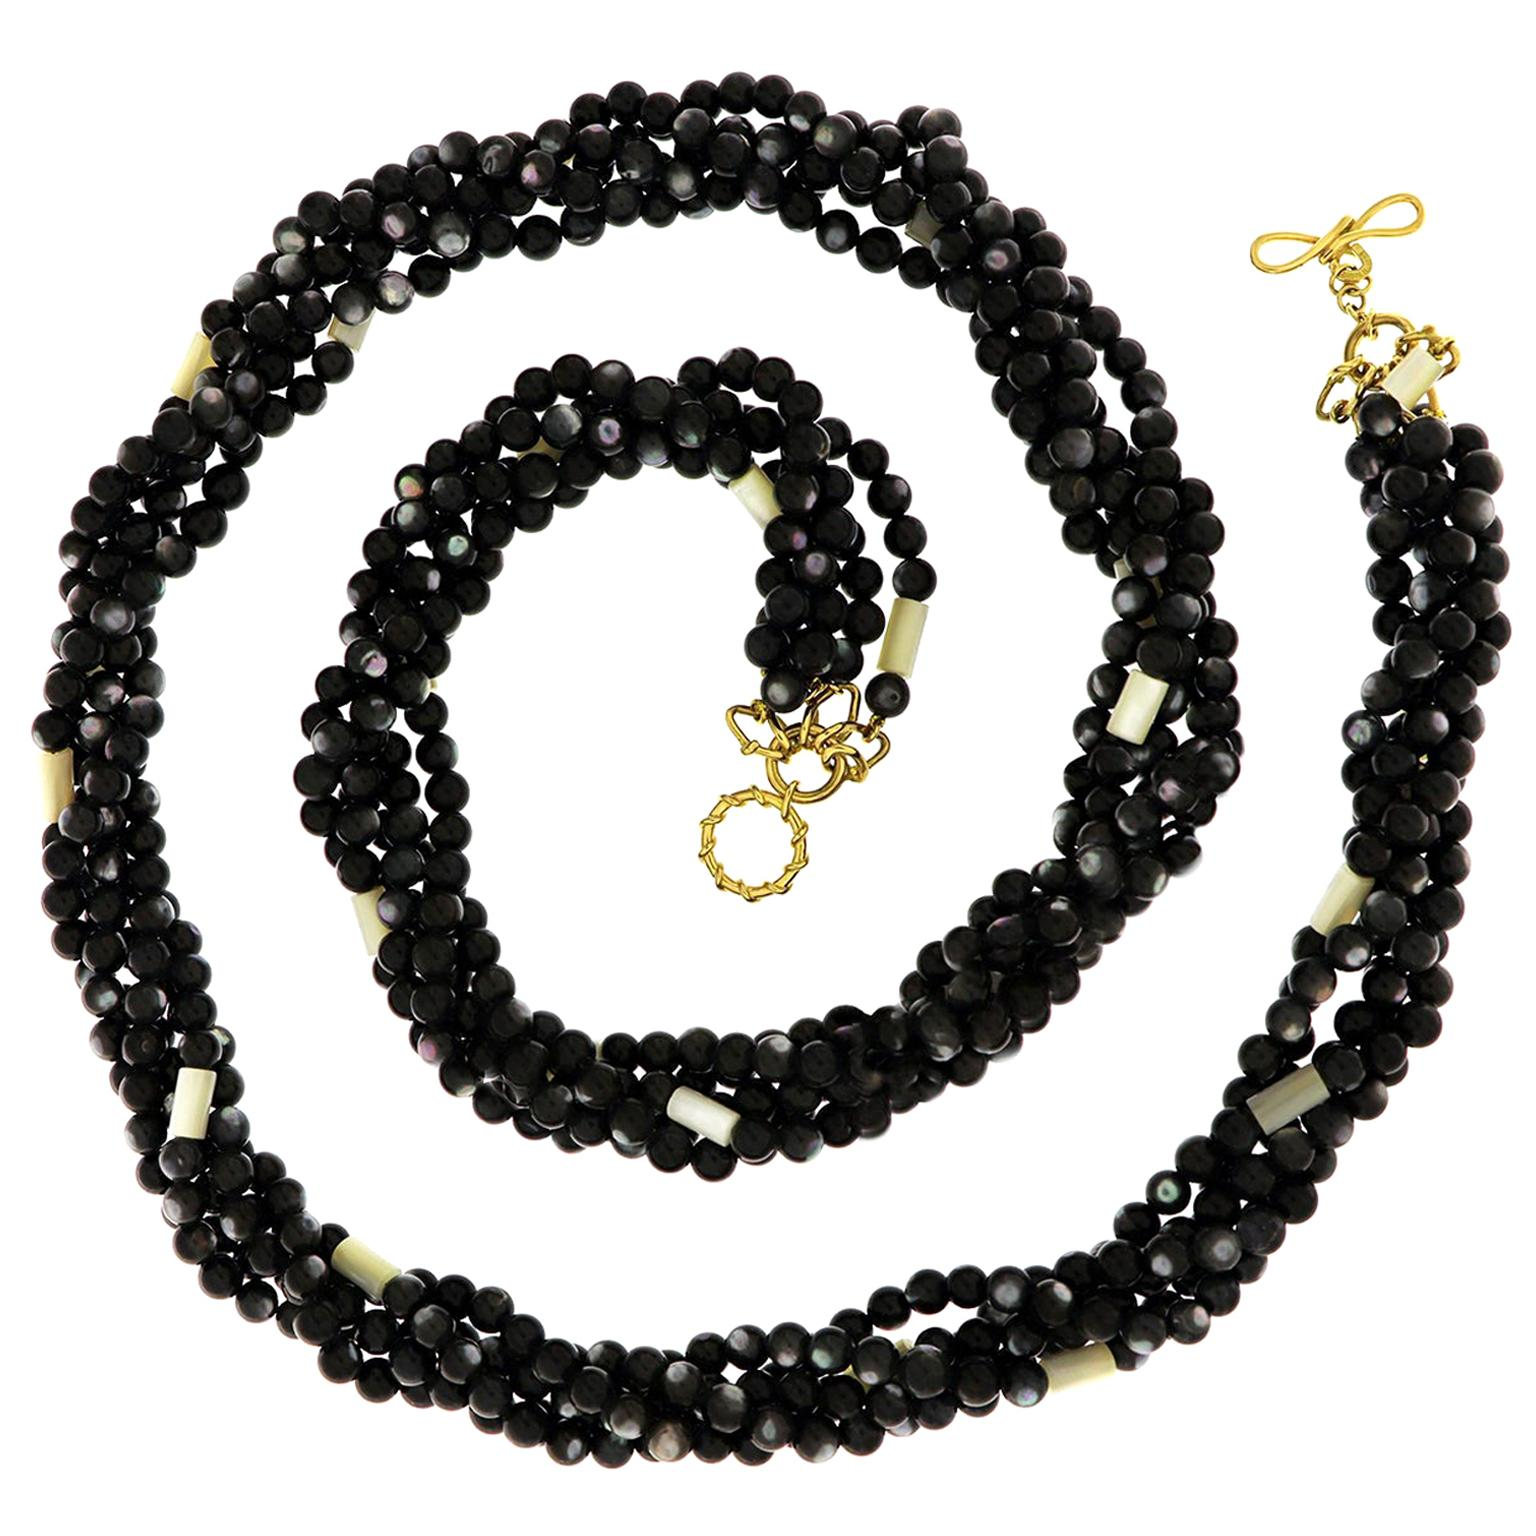 Valentin Magro Multi Strands Black and White Mother of Pearl Necklace